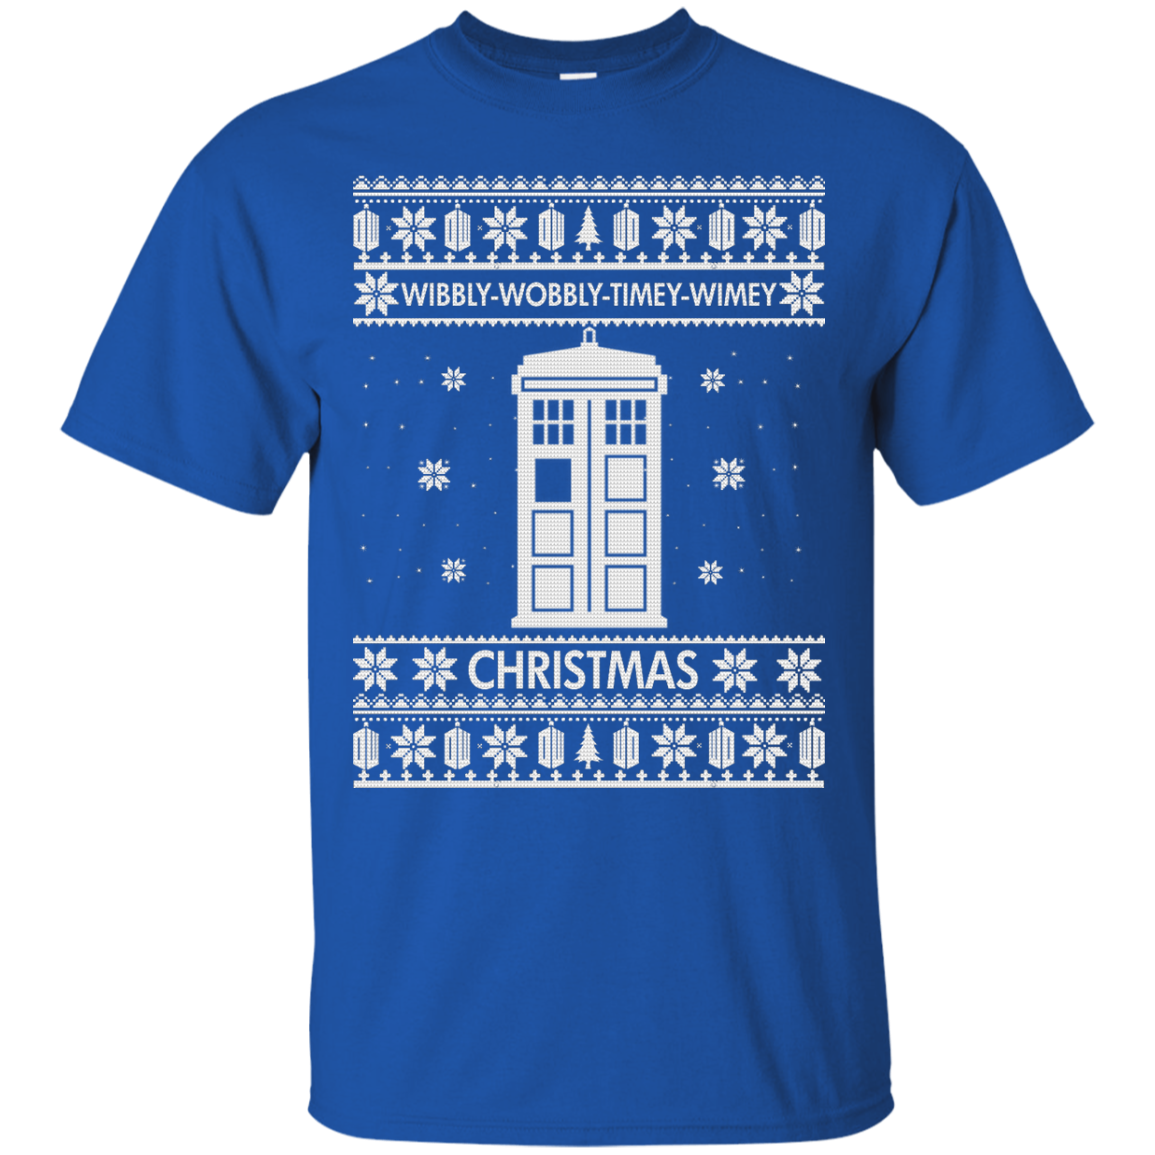 6c48810d6 Doctor Who Christmas Sweater, Shirt - Wibbly Wobbly Timey Wimey ...